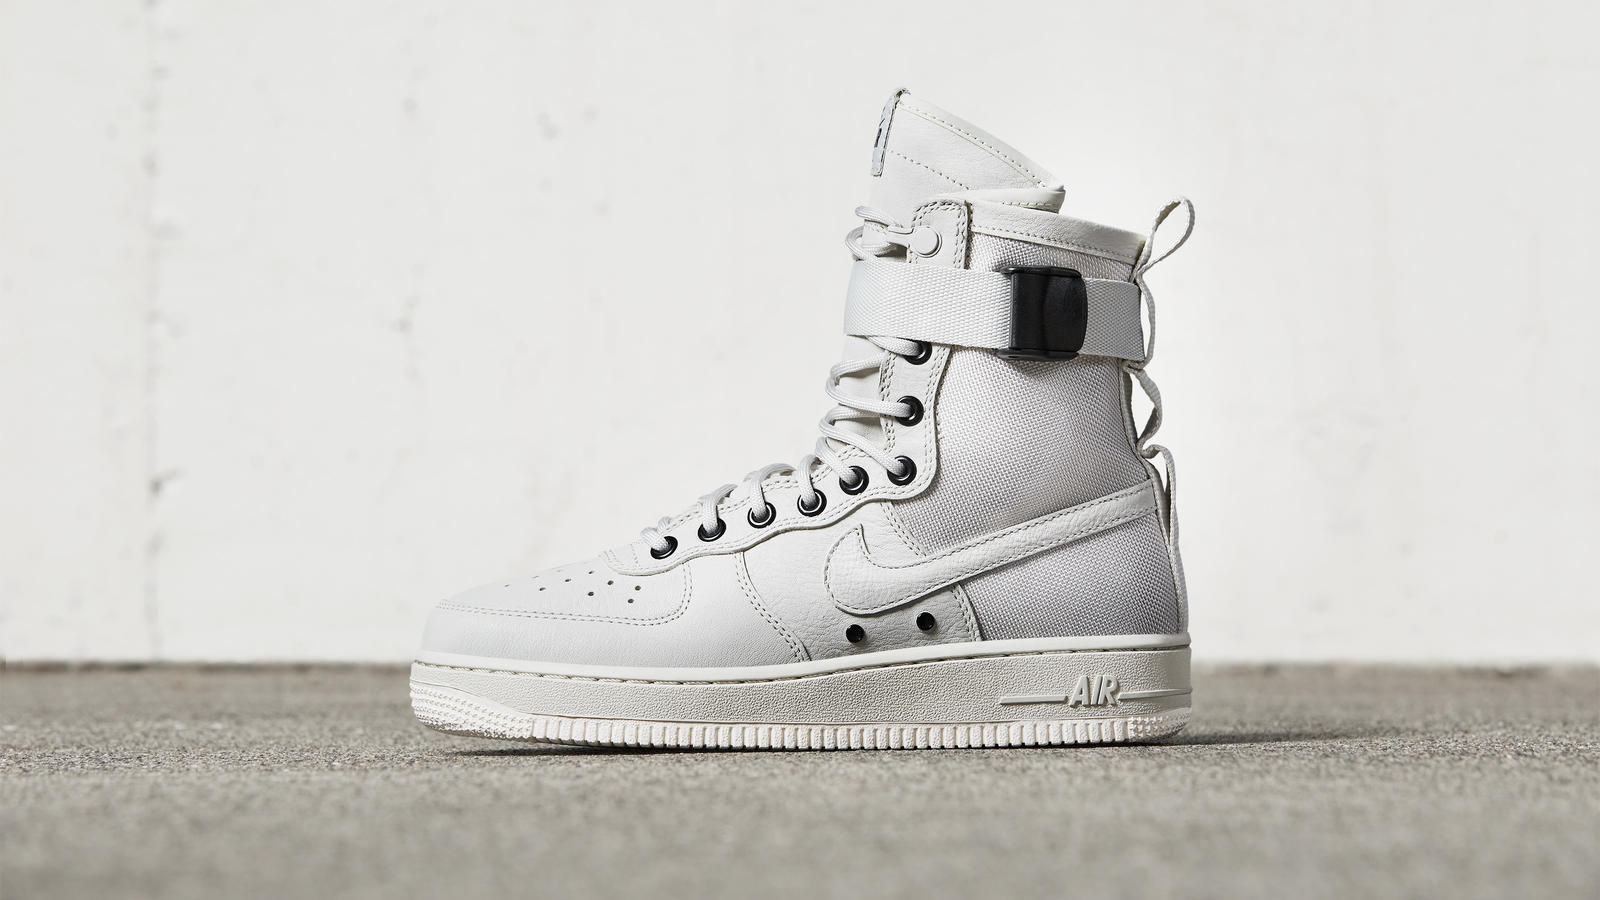 The New Generation of Force The Special Field Air Force 1